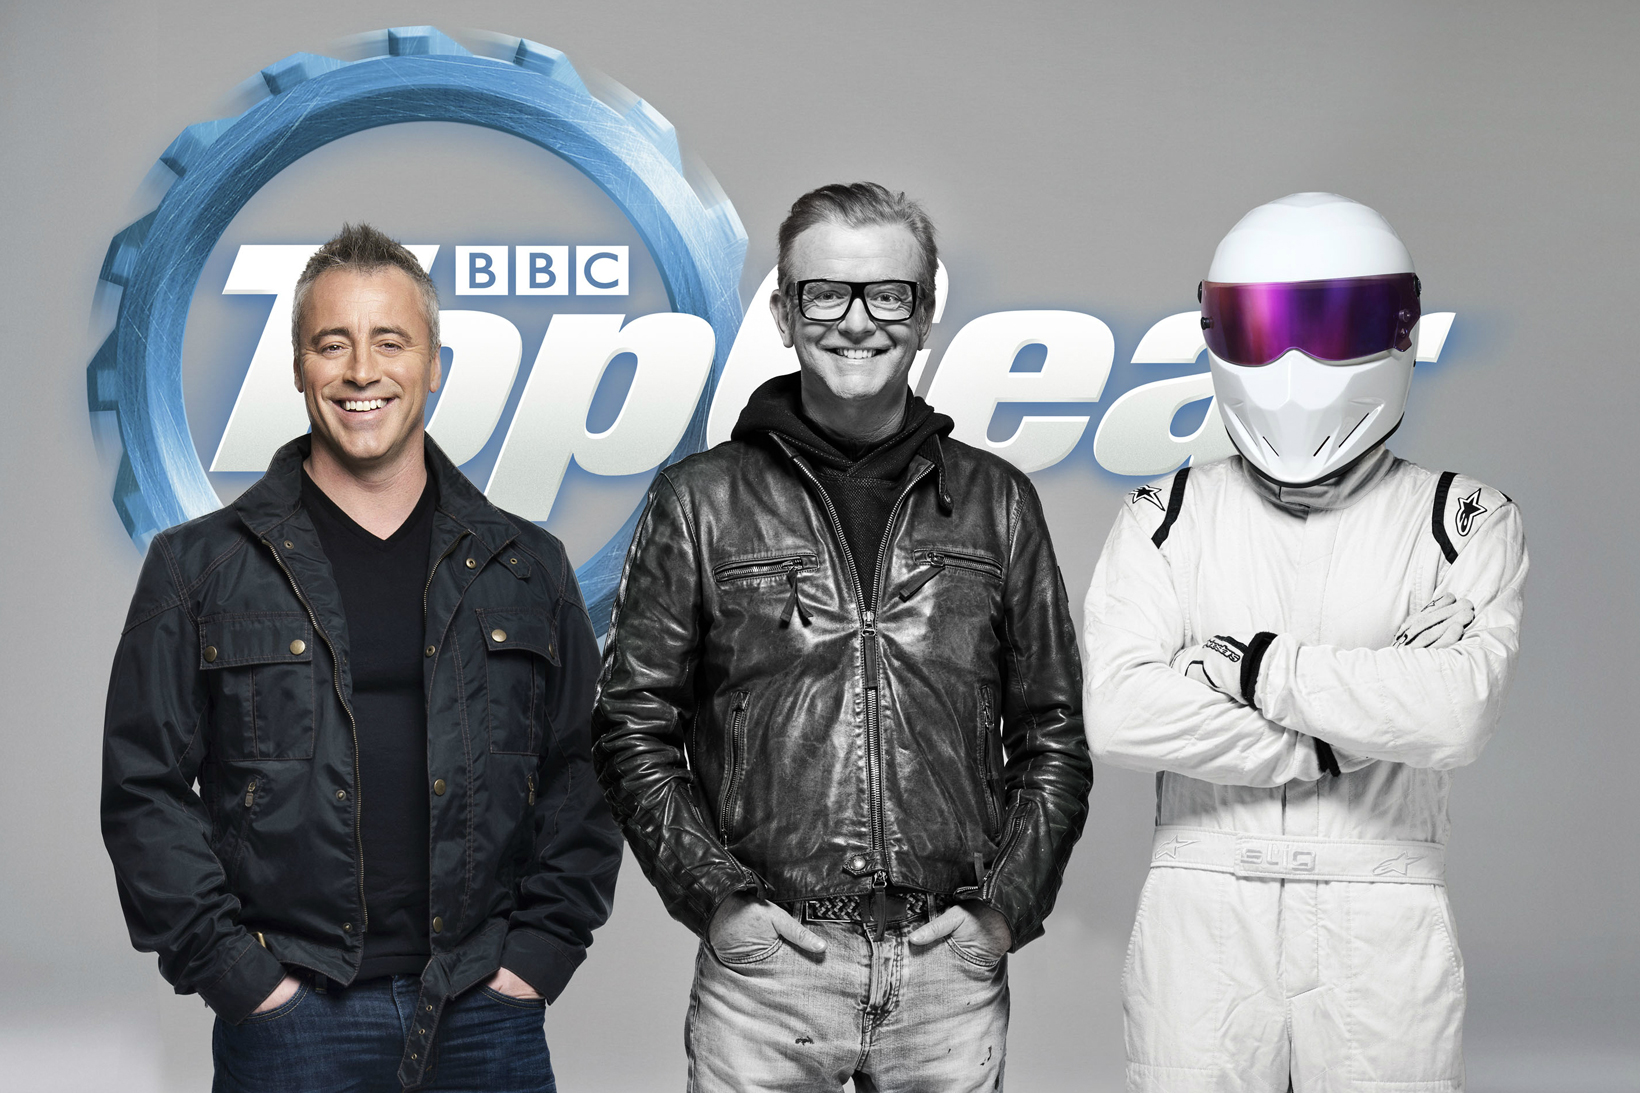 Chris Evans Will No Longer Be a Host on 'Top Gear UK'